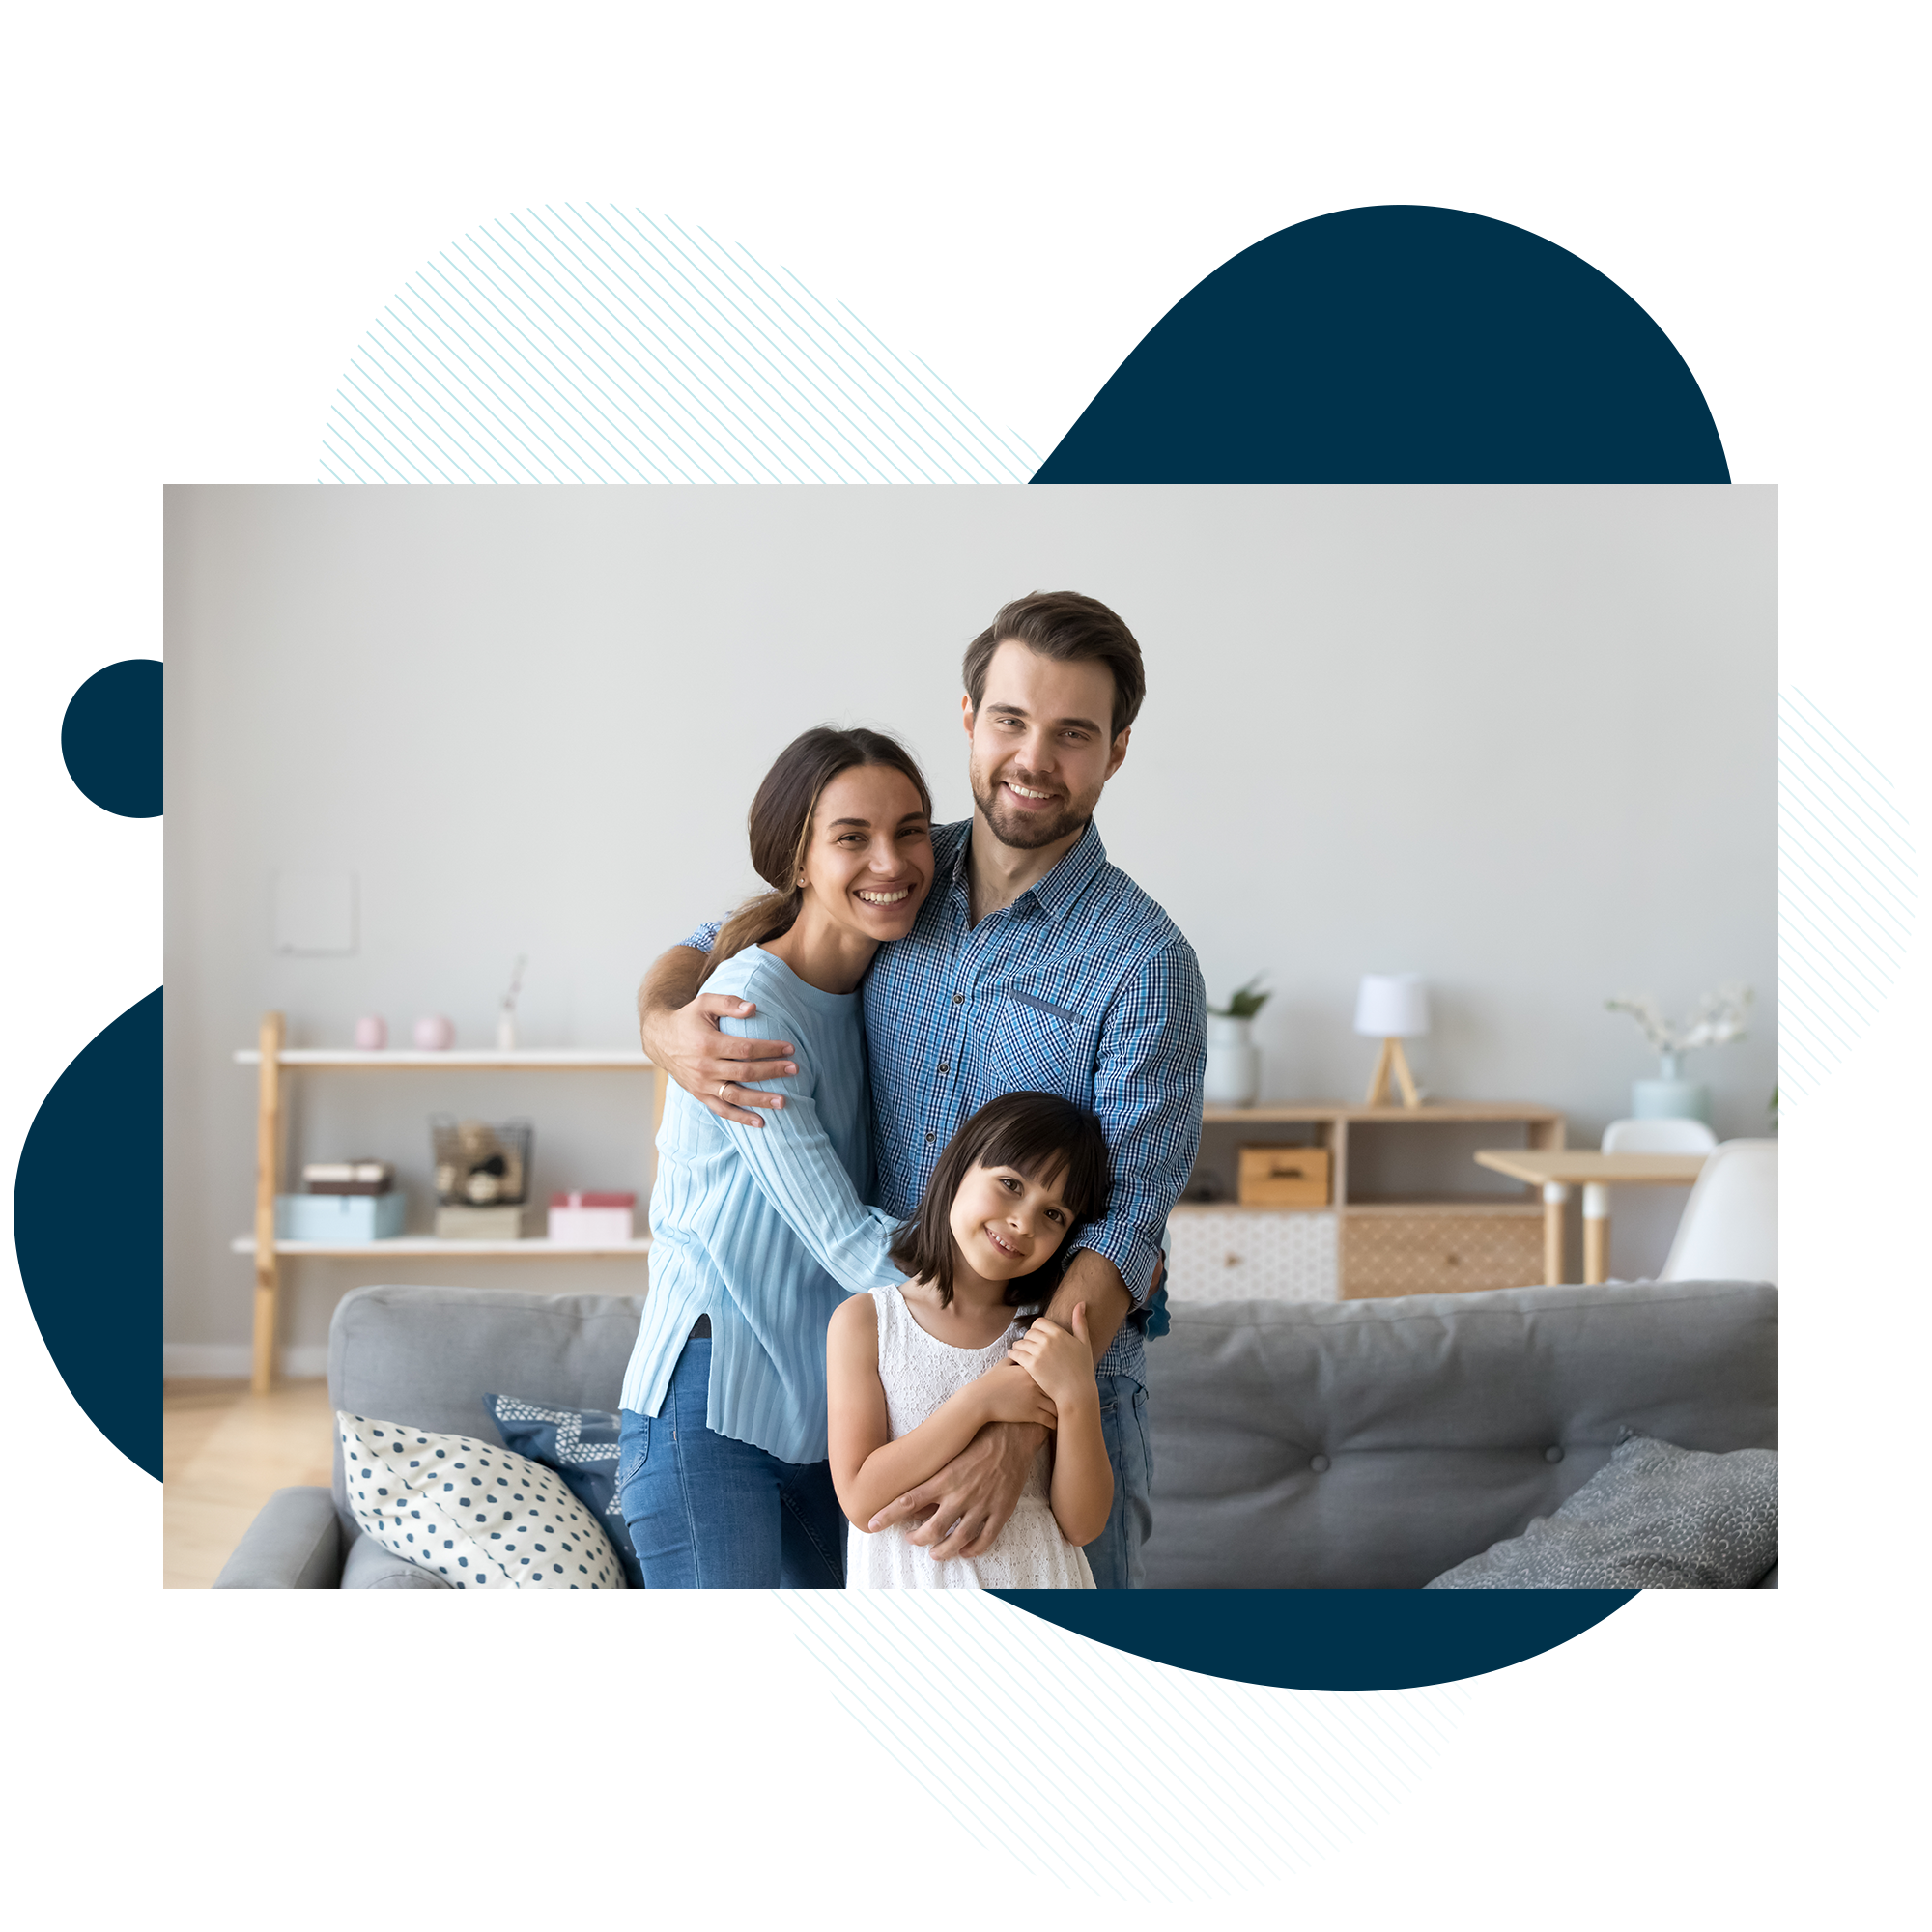 Young family hugging in living room